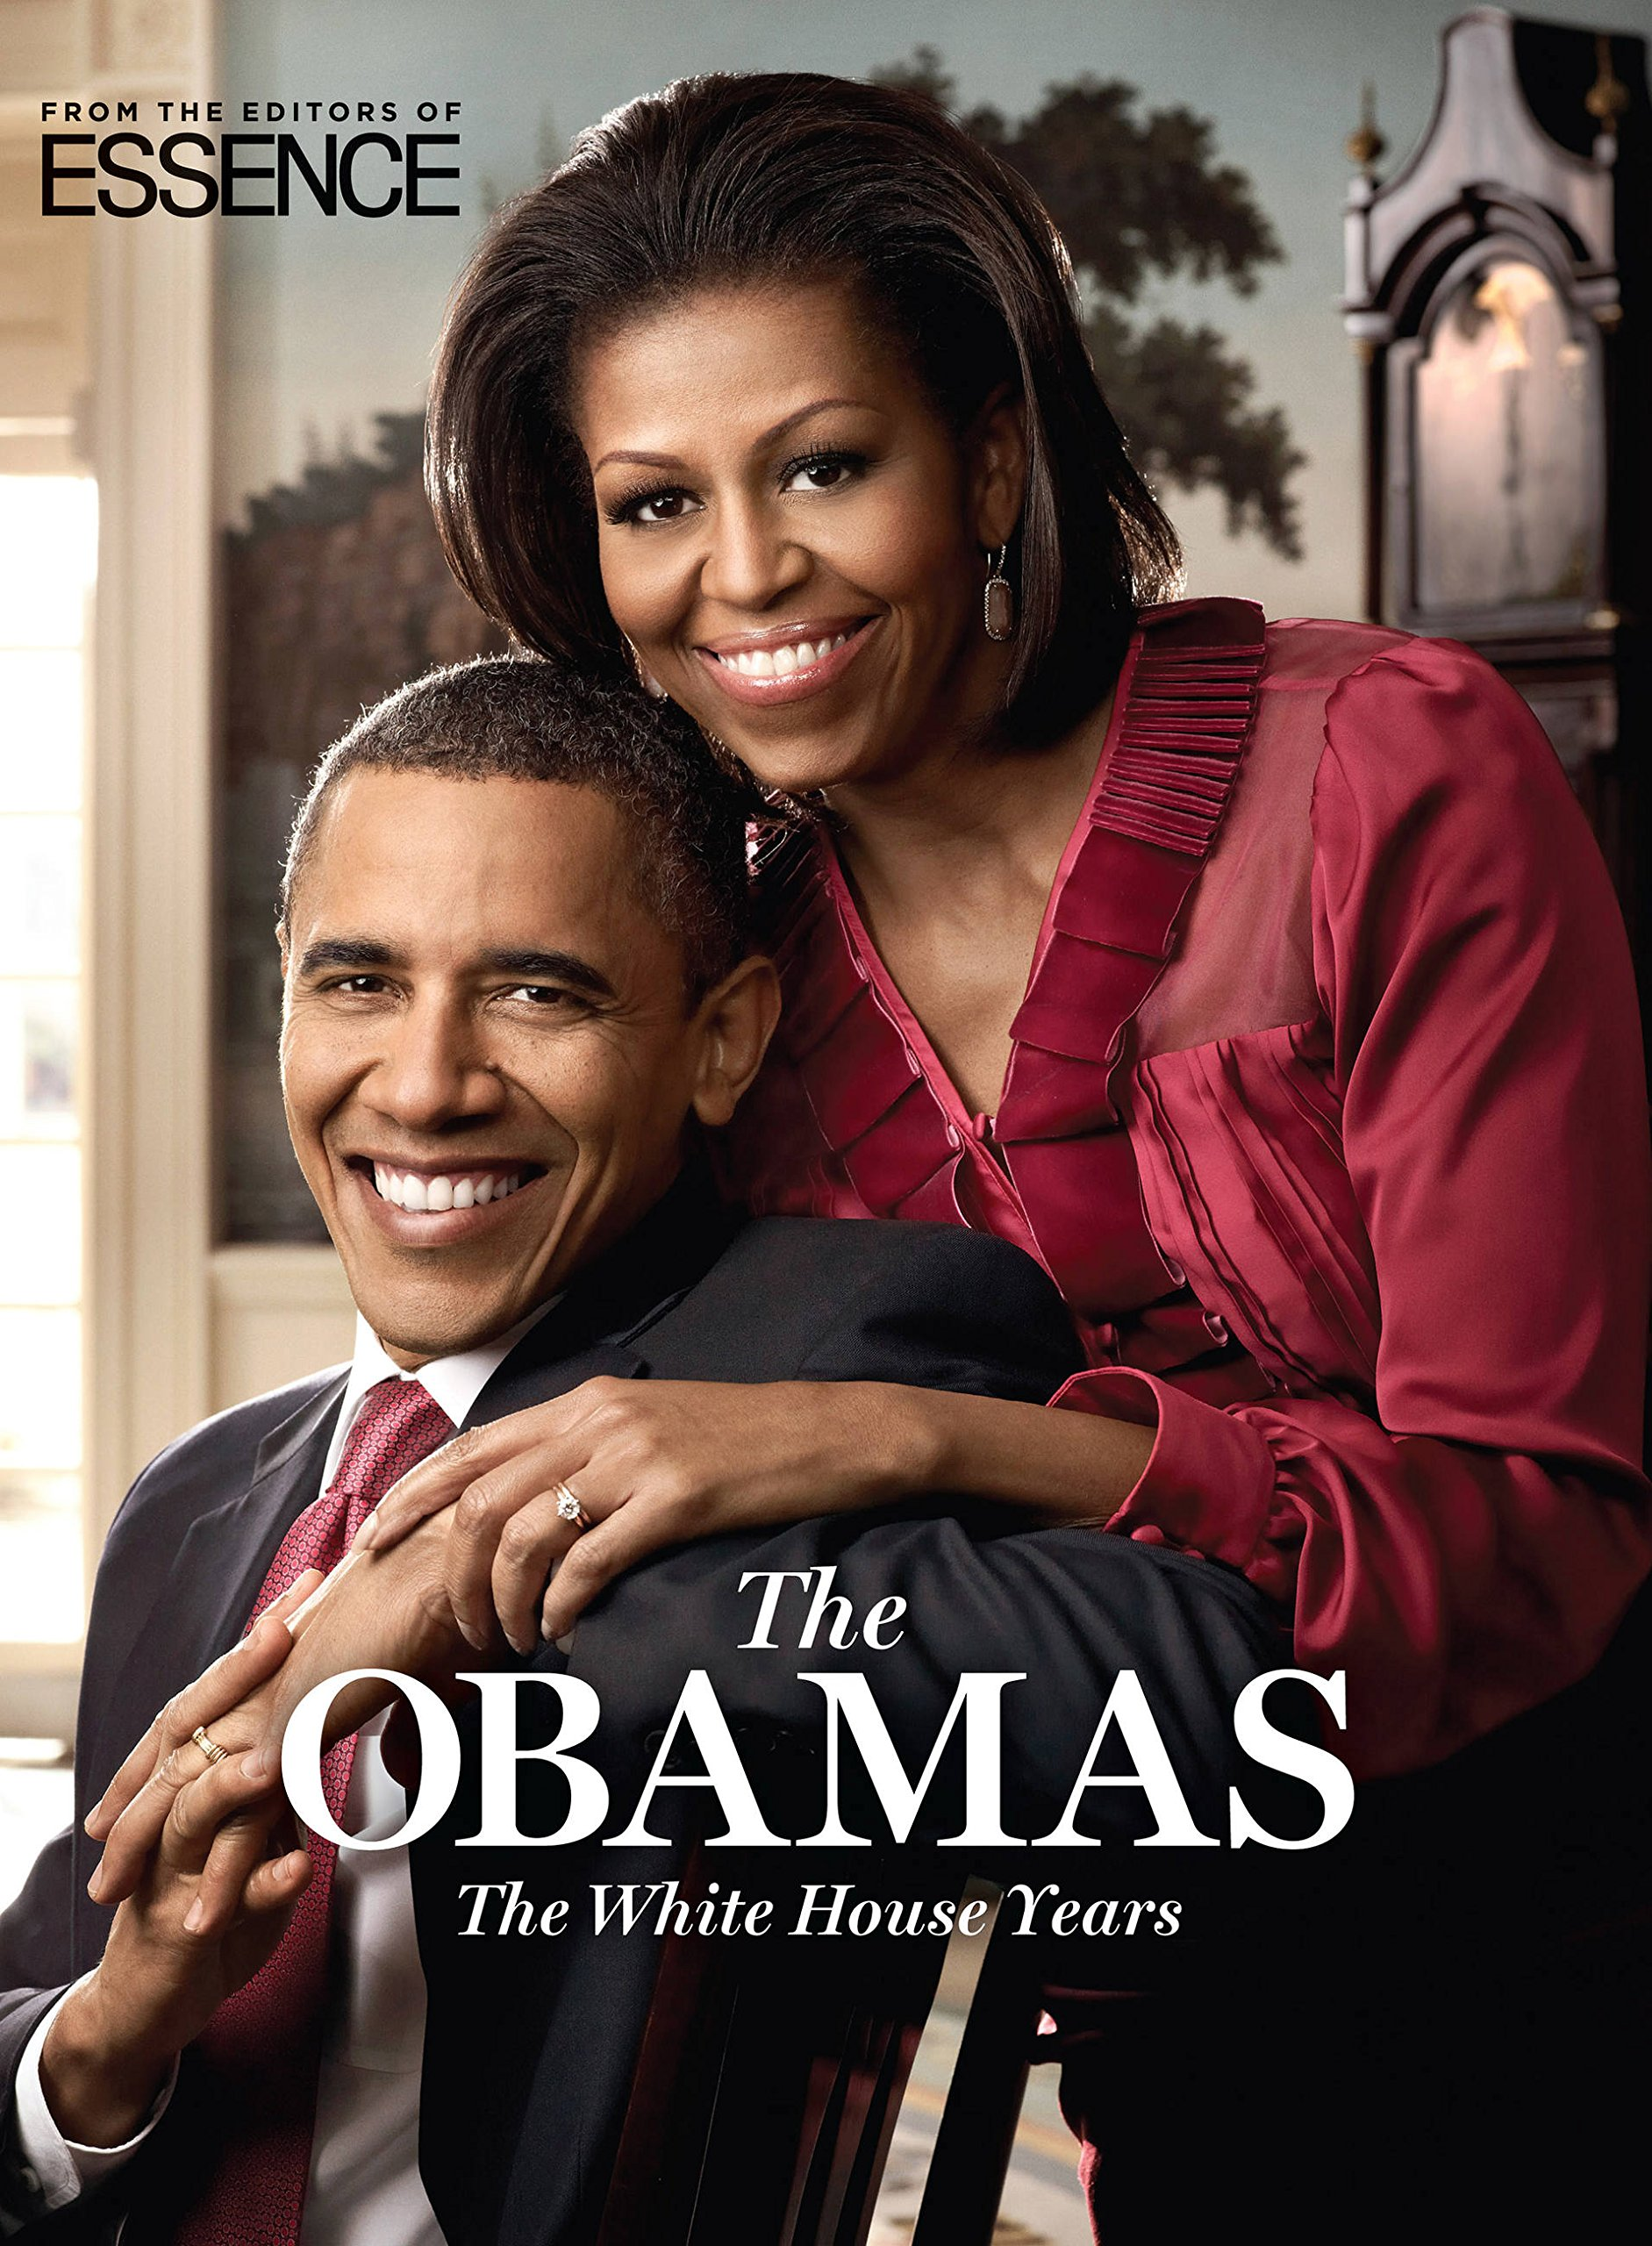 Amazon.com: The Obamas: The White House Years (9781683300700): The ...